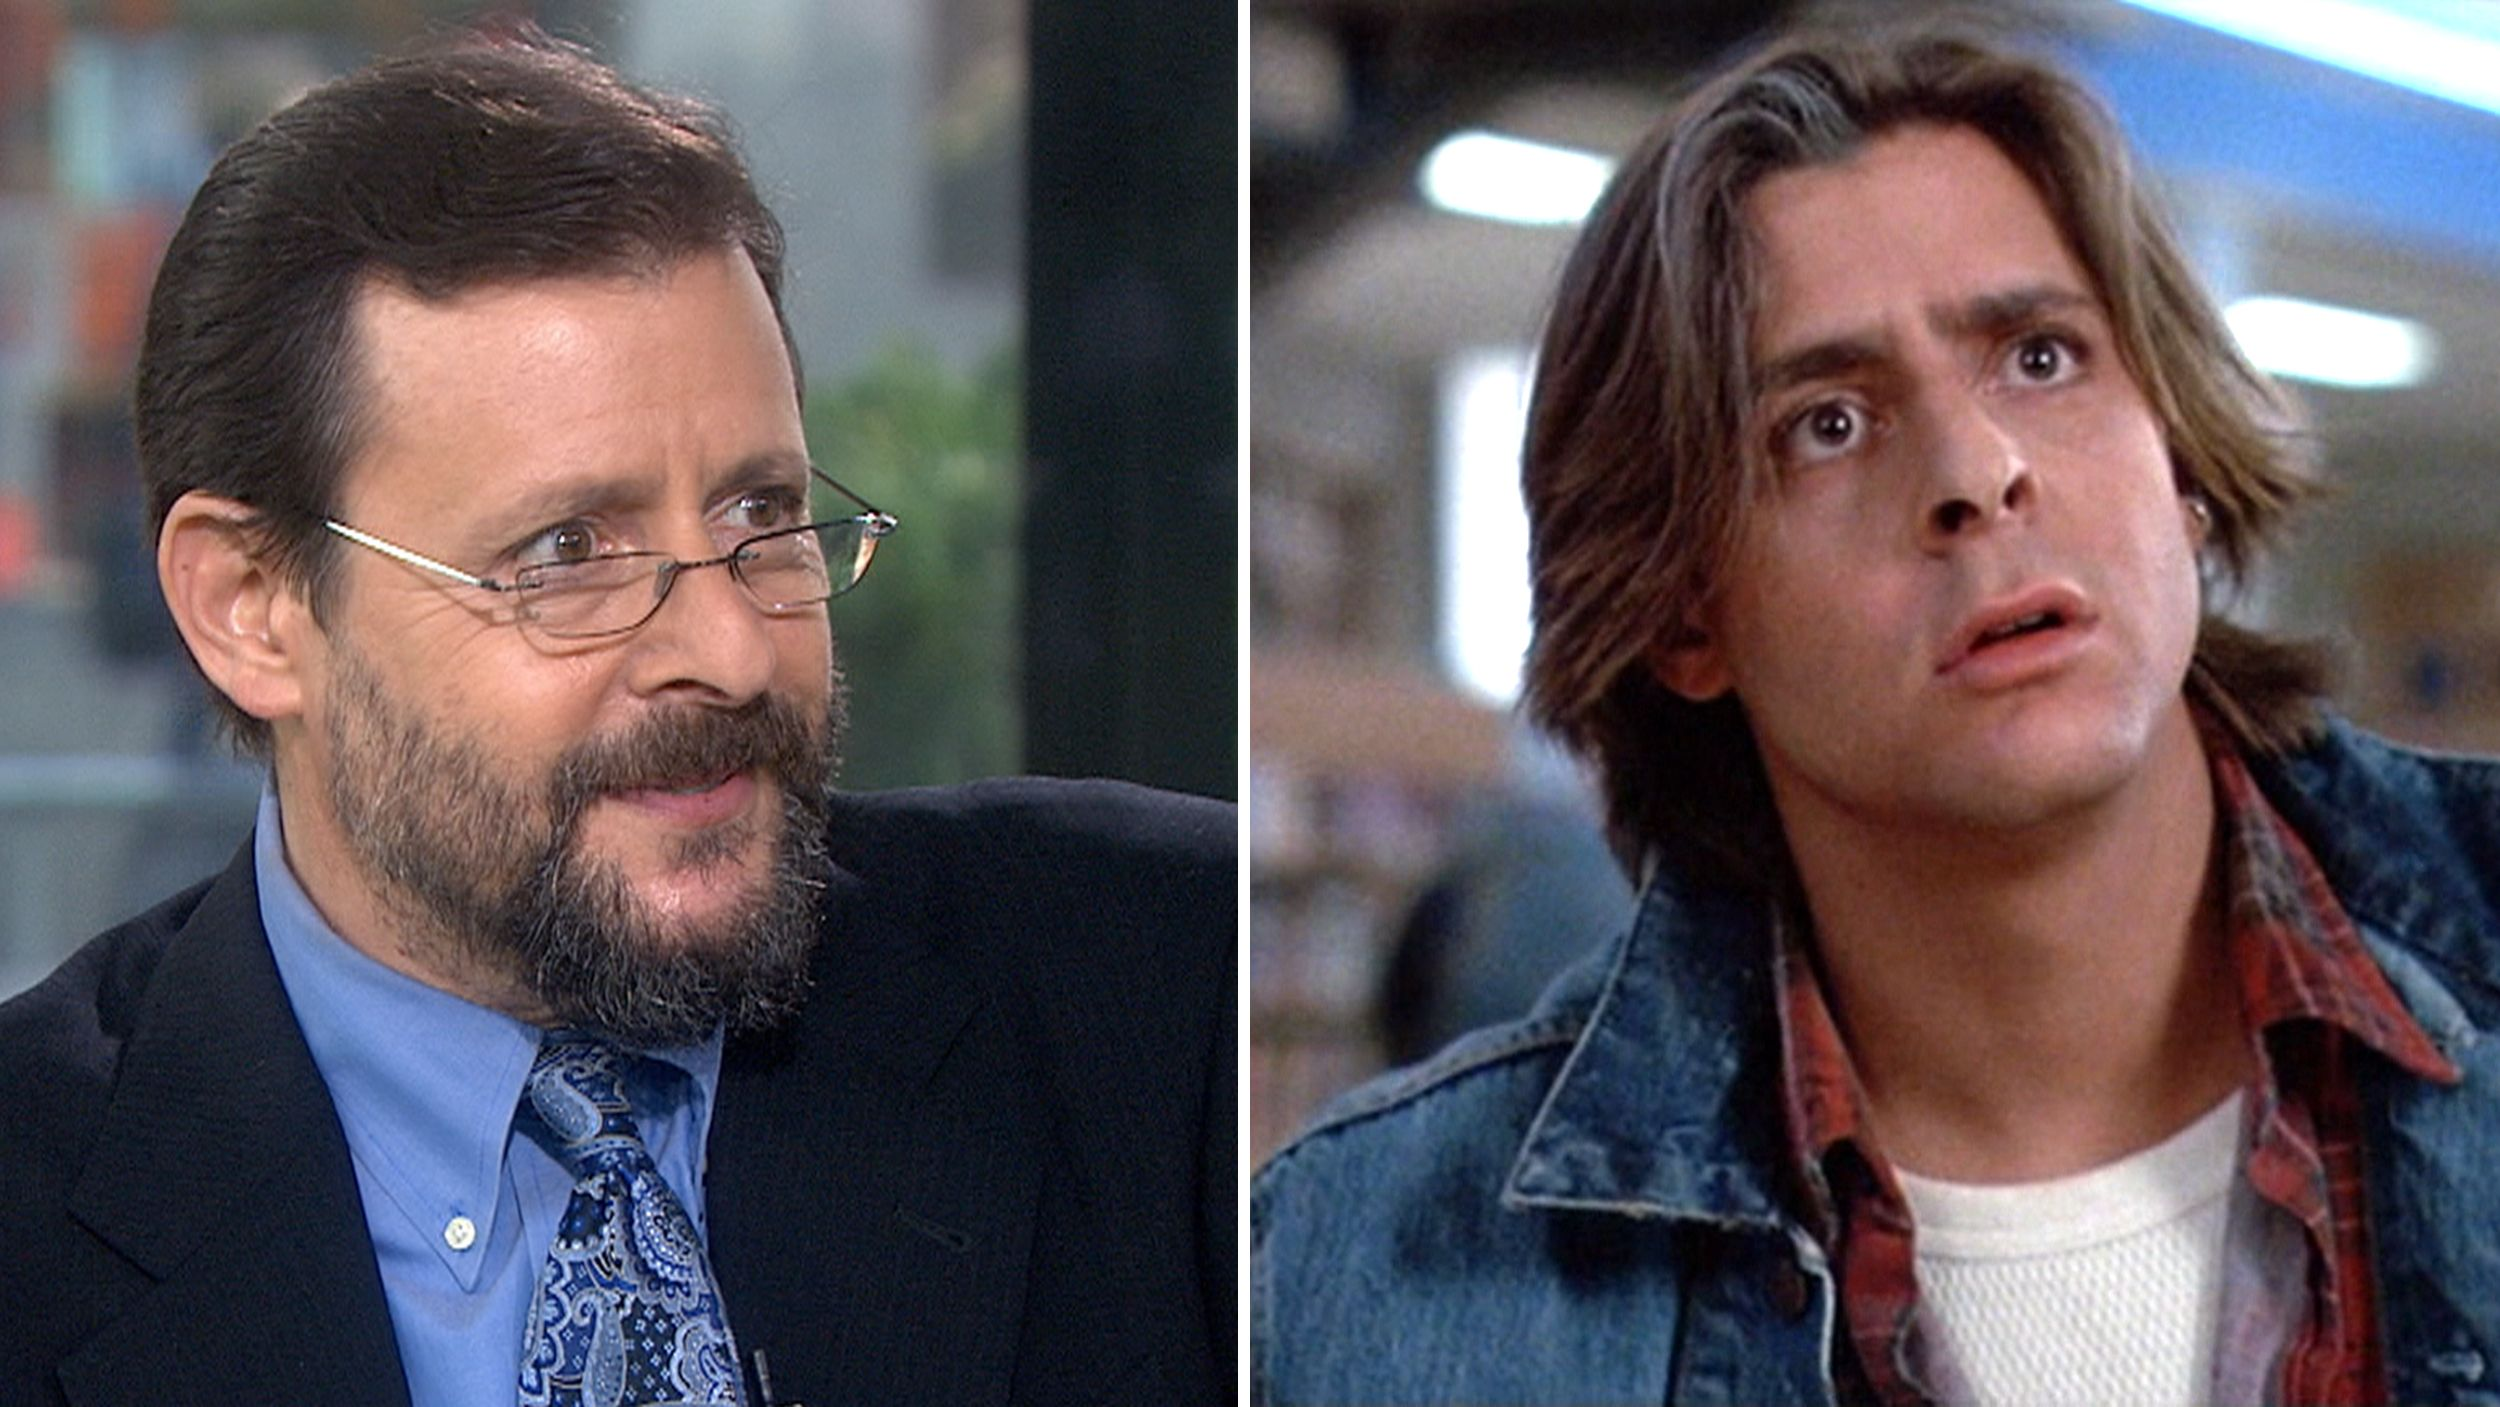 Is judd nelson gay